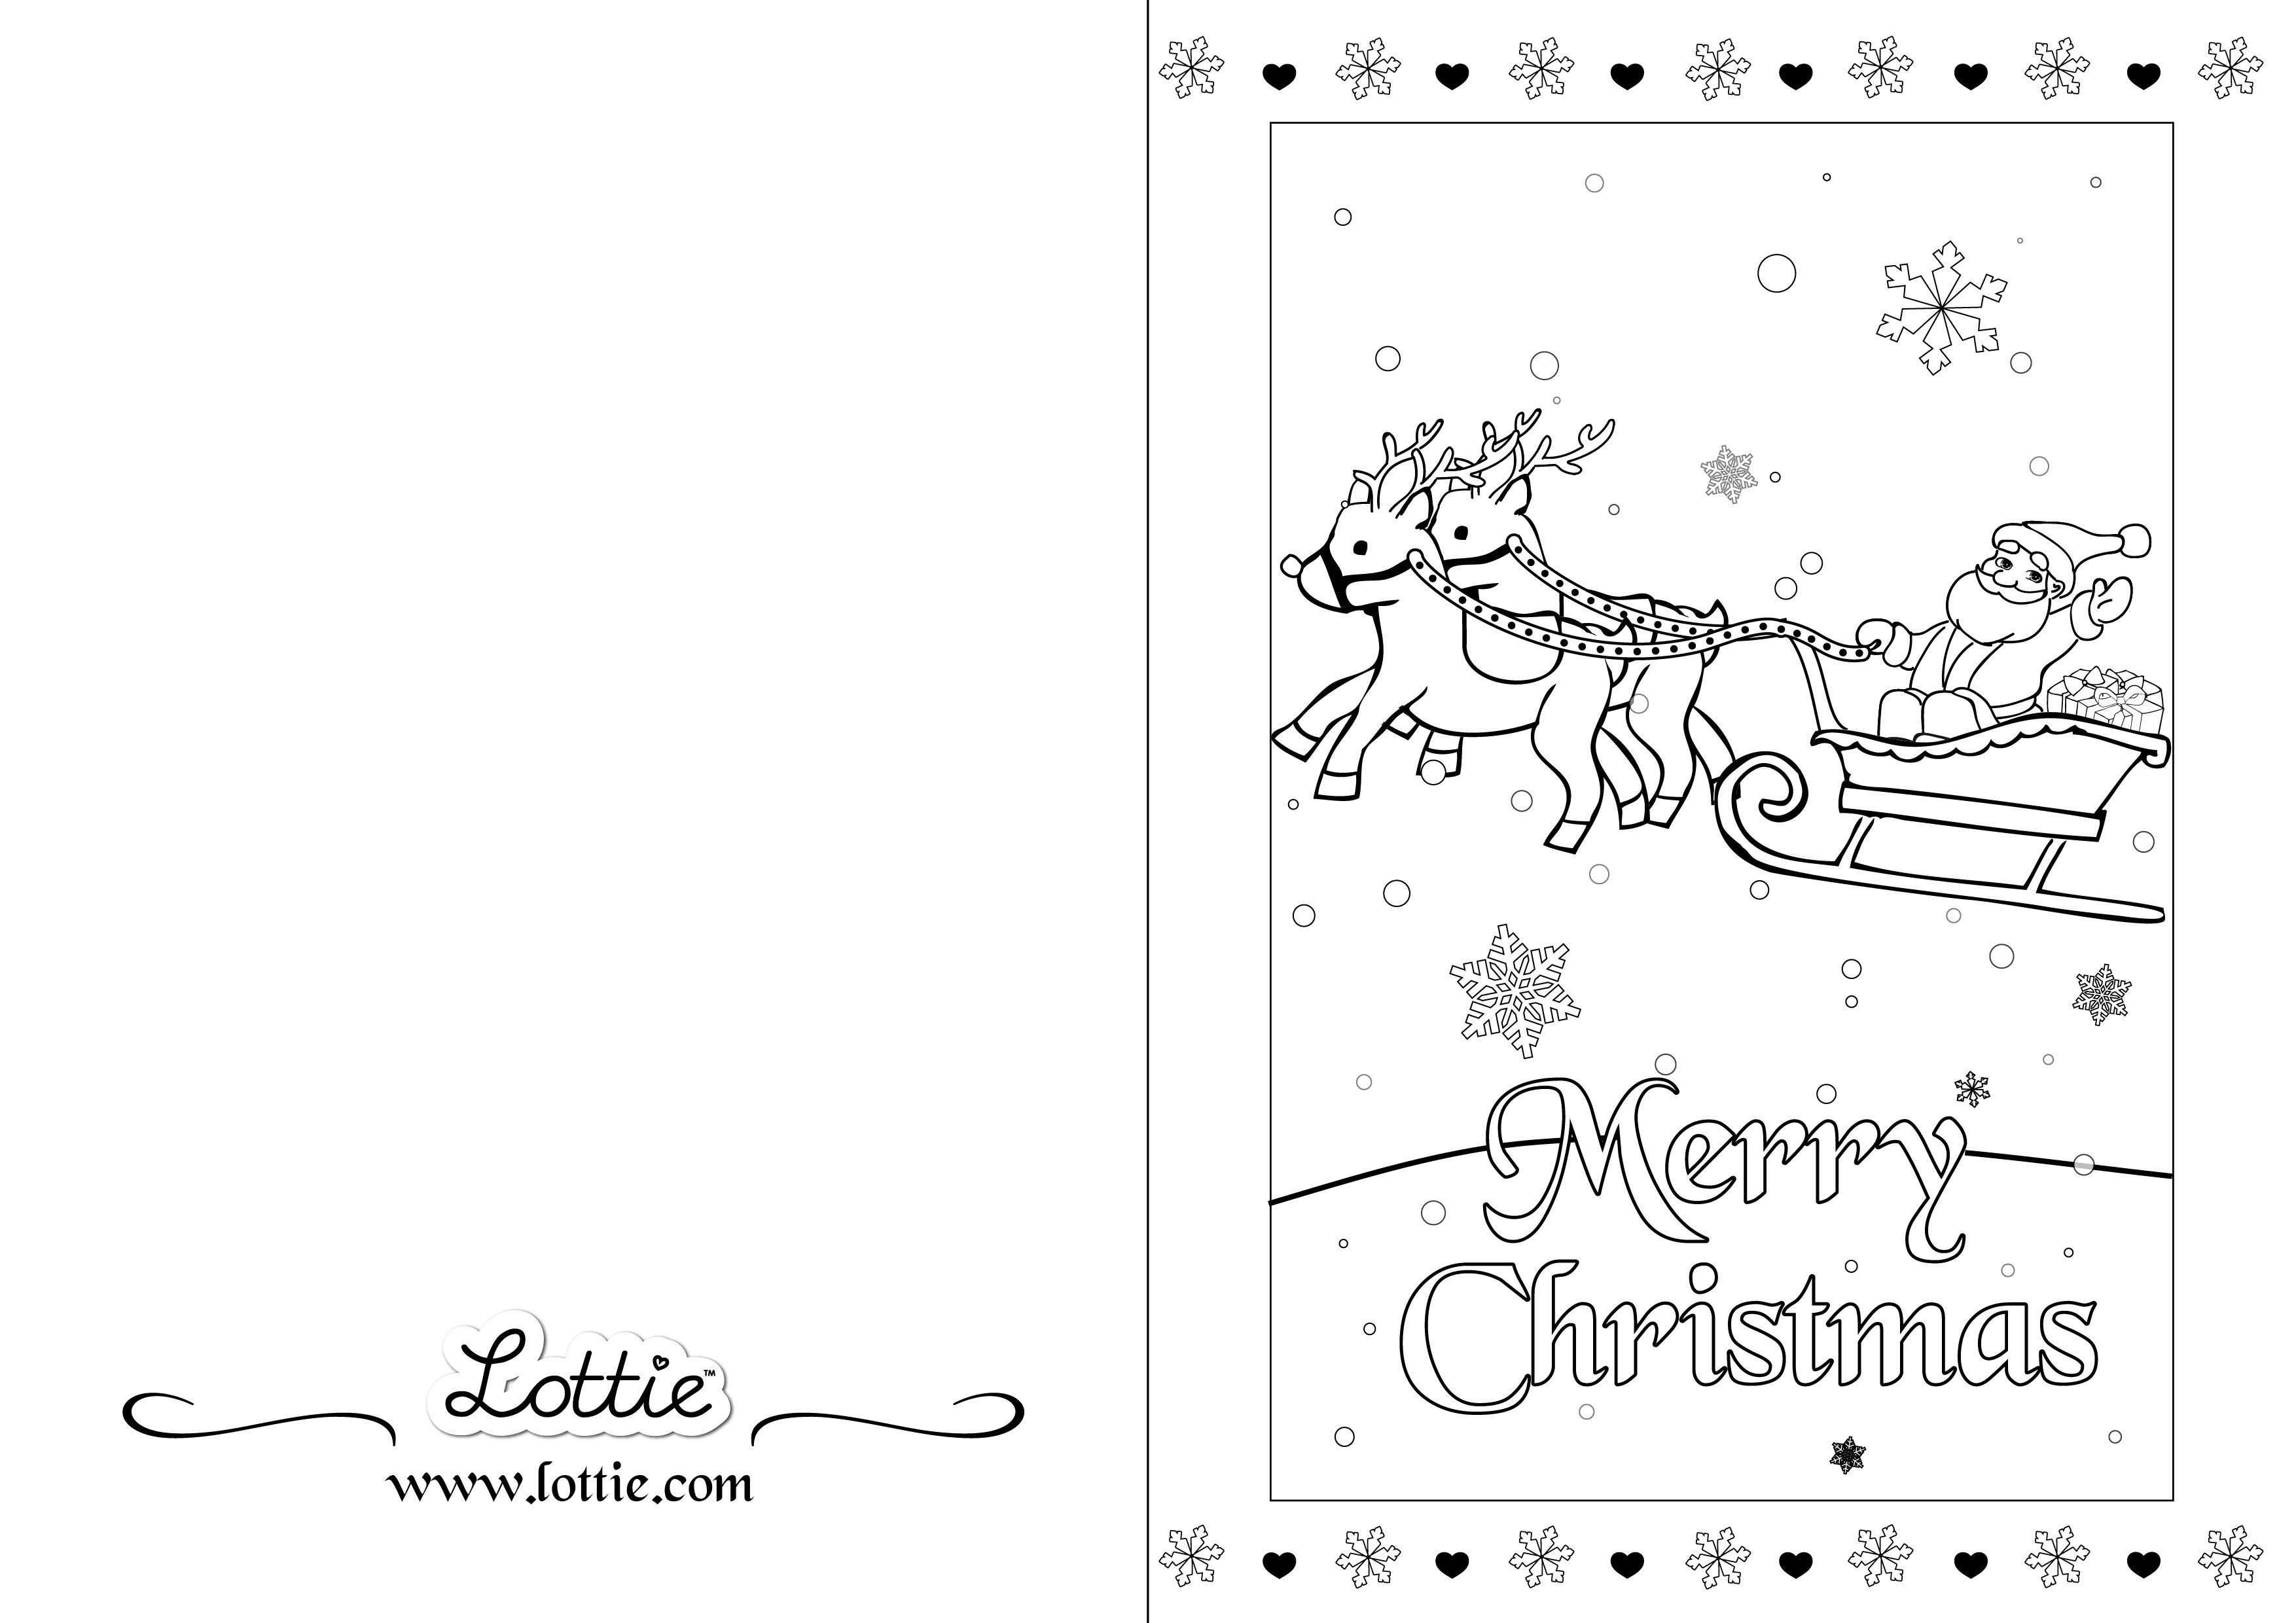 christmas card coloring pages christmas colouring card 3 lottie dolls card coloring pages christmas